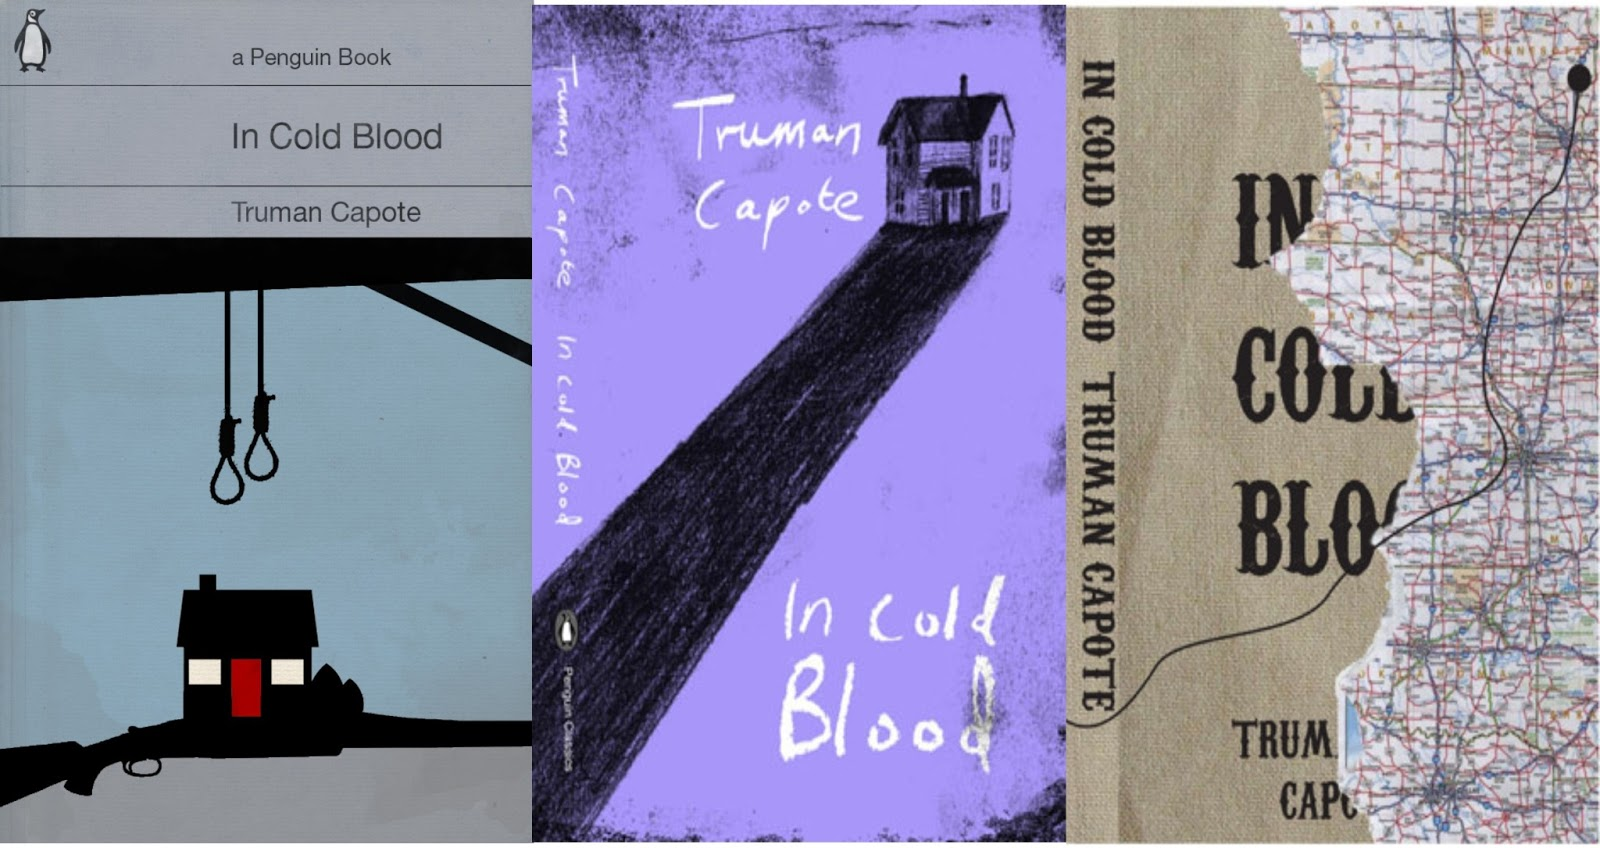 a critical review of in cold blood a novel by truman capote Singer-songwriter steve earle describes how truman capote's account of a murder, in cold blood, captured his imagination when he was a boy, and inspired a lifelong opposition to the death penalty.